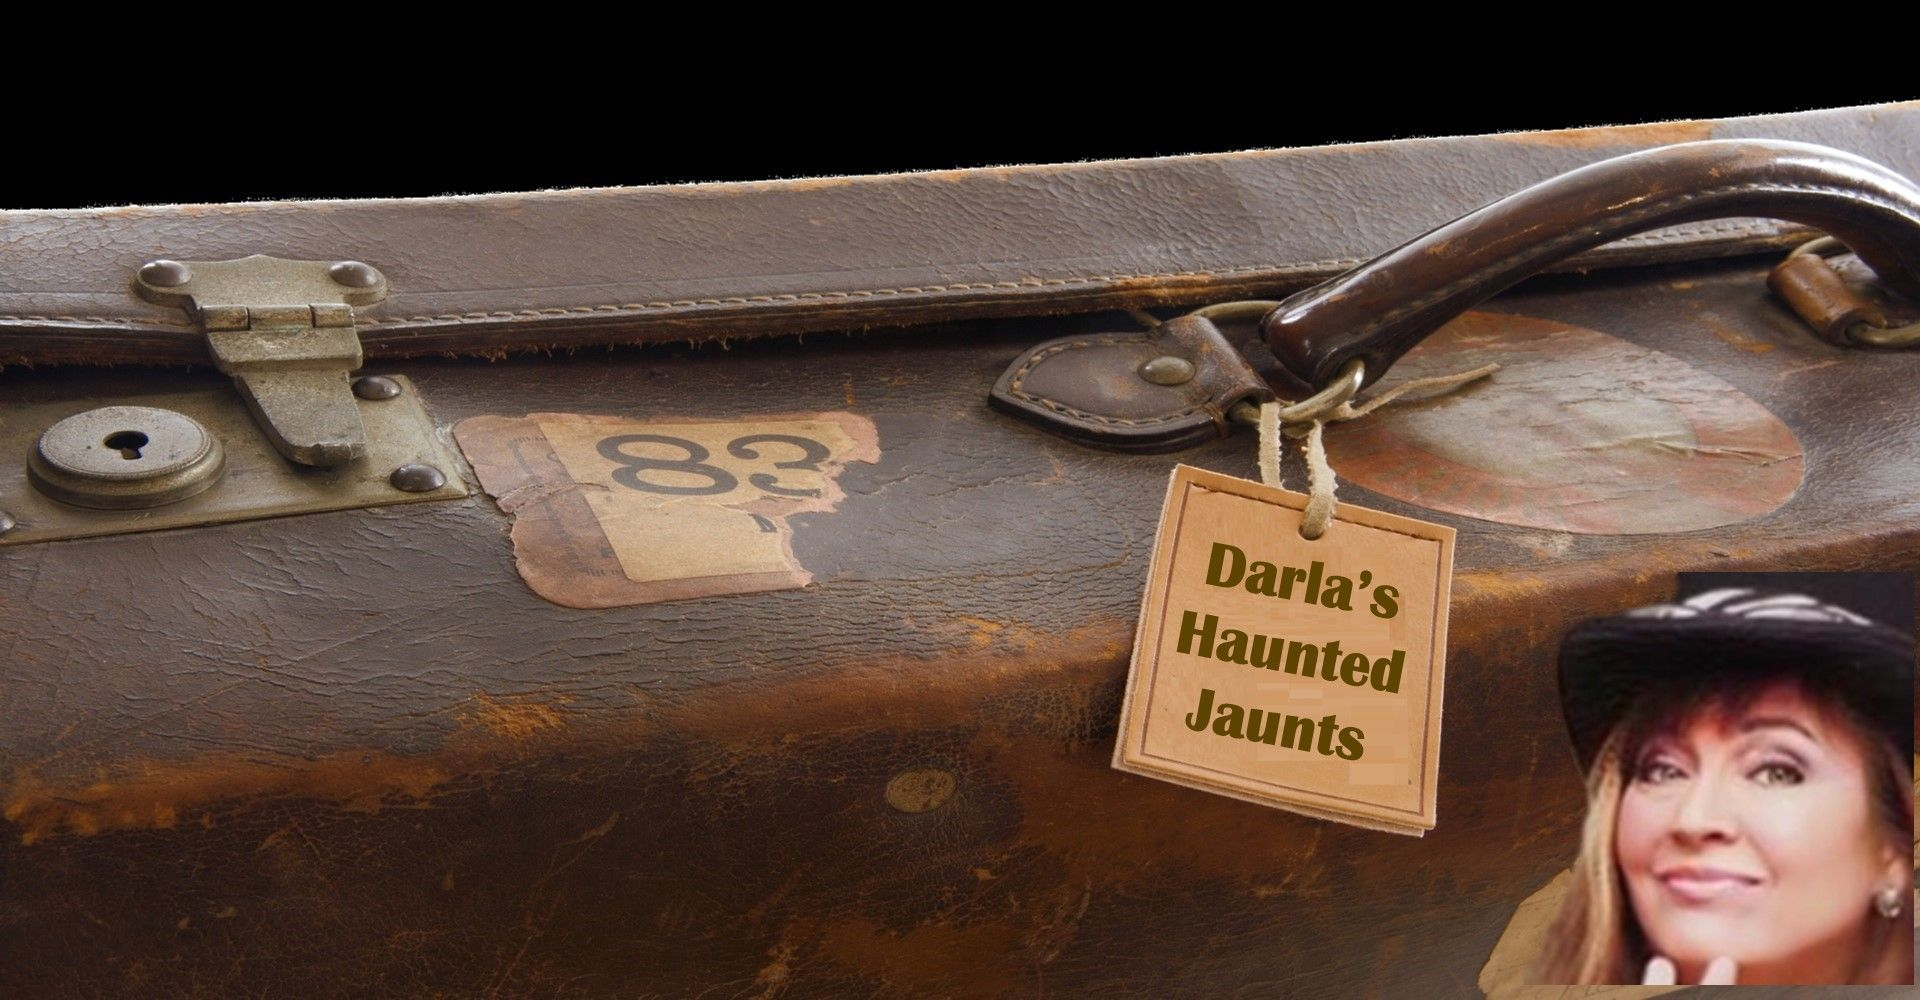 Darla's Haunted Jaunts